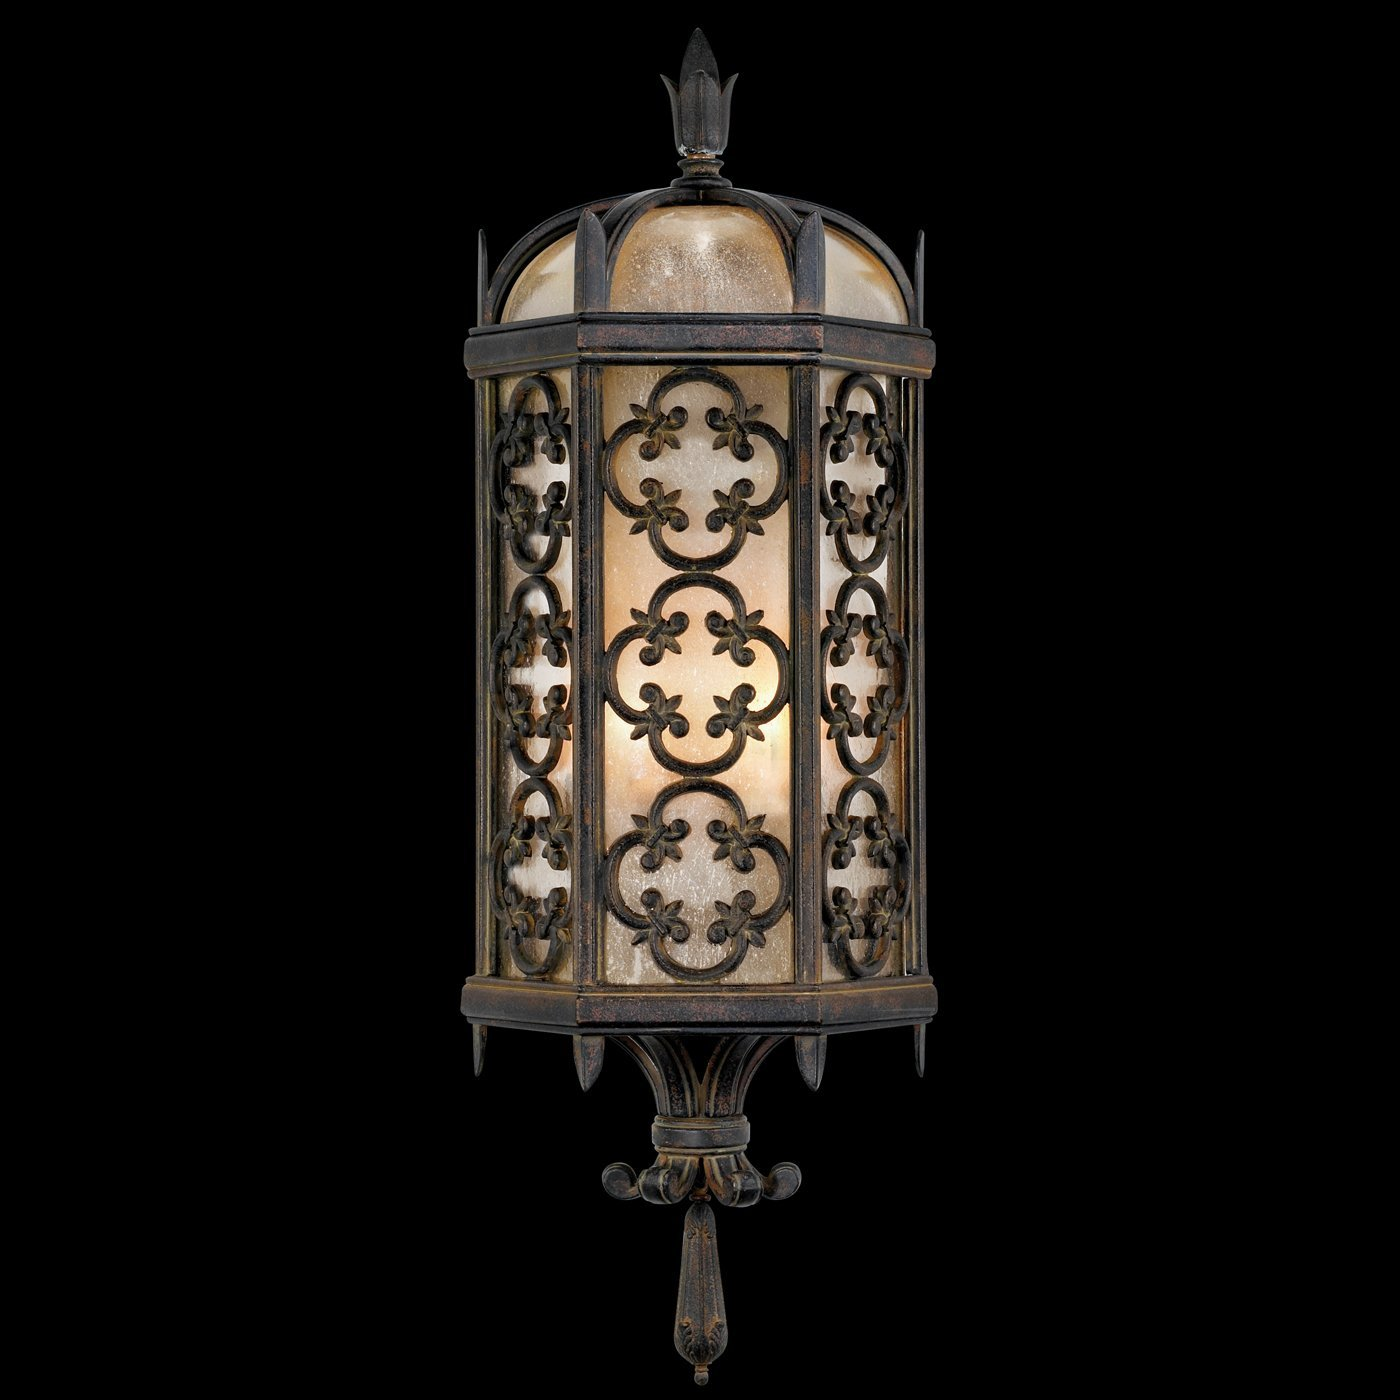 Fine Art Lamps 329681, Costa del Sol Outdoor Wall Pocket Sconce Lighting, 120 Total Watts, Iron